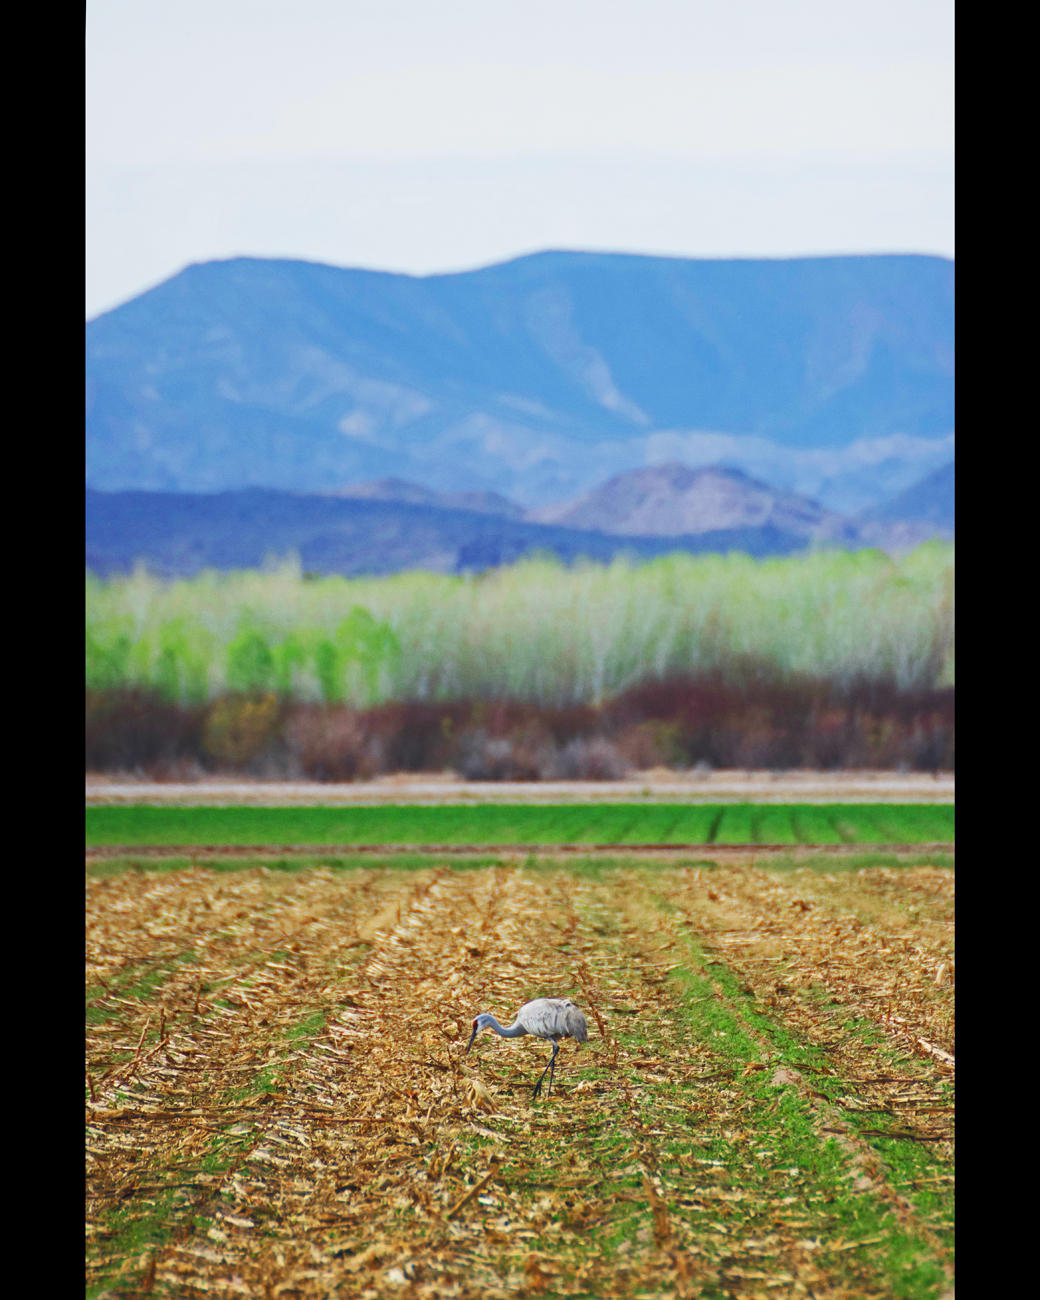 Sandhill crane feeding in an agricultural field with mountains in the background at Cibola